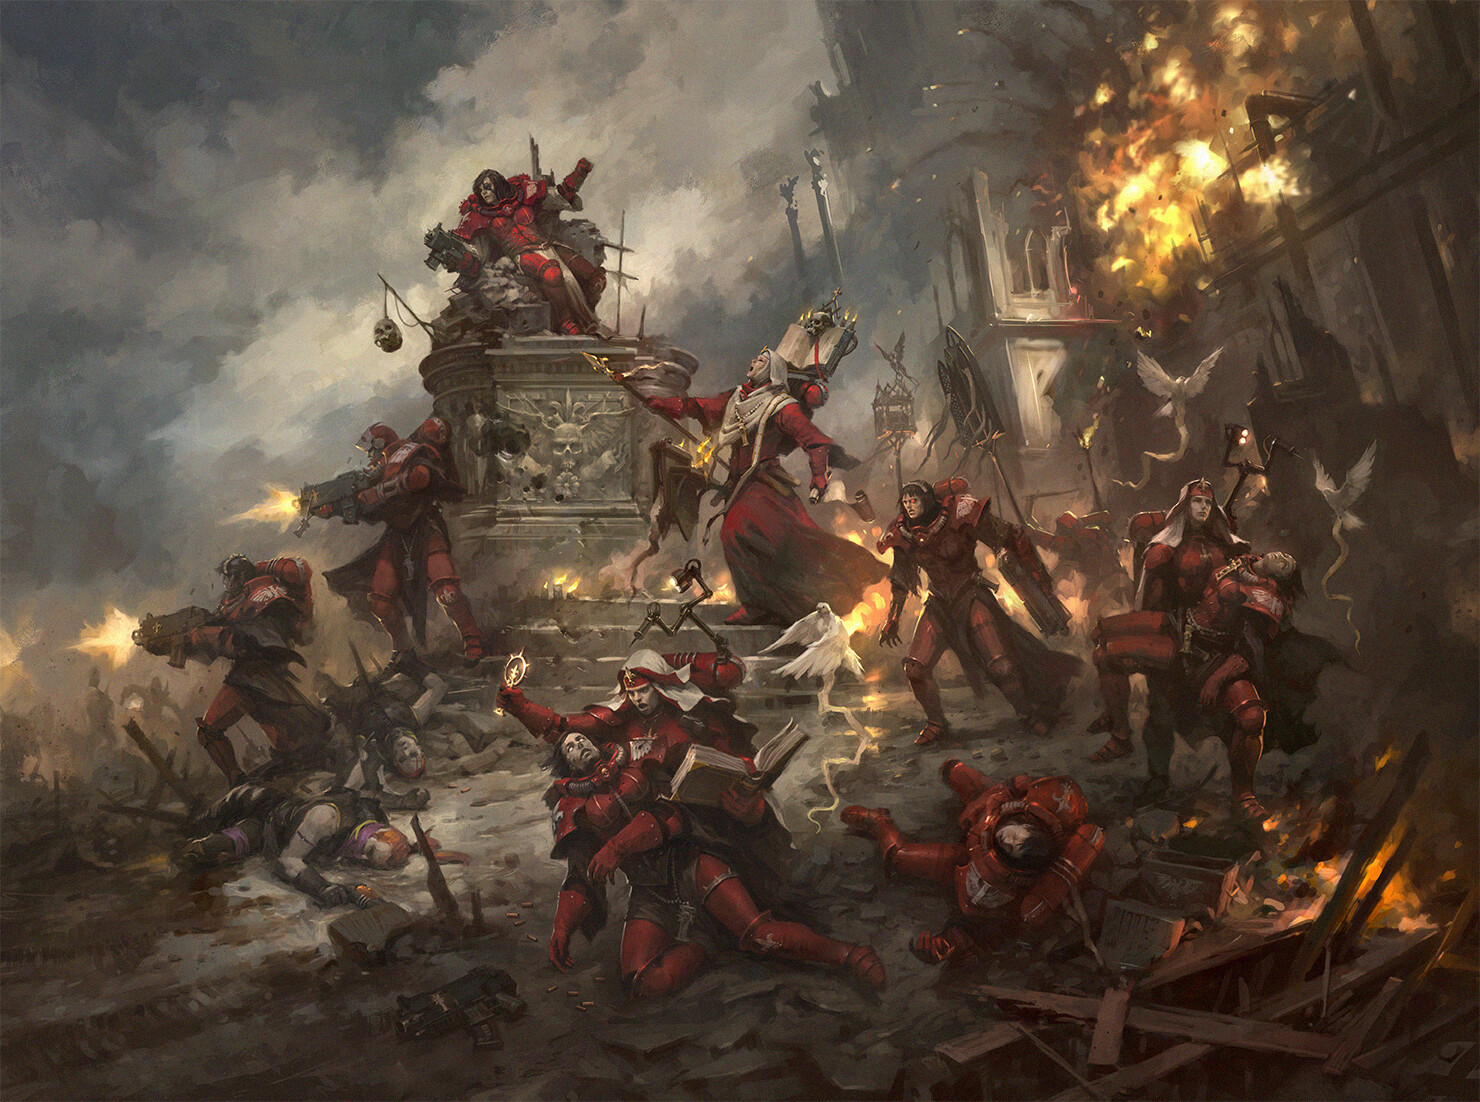 General 1480x1102 Warhammer 40,000 Games Workshop Adepta Sororitas